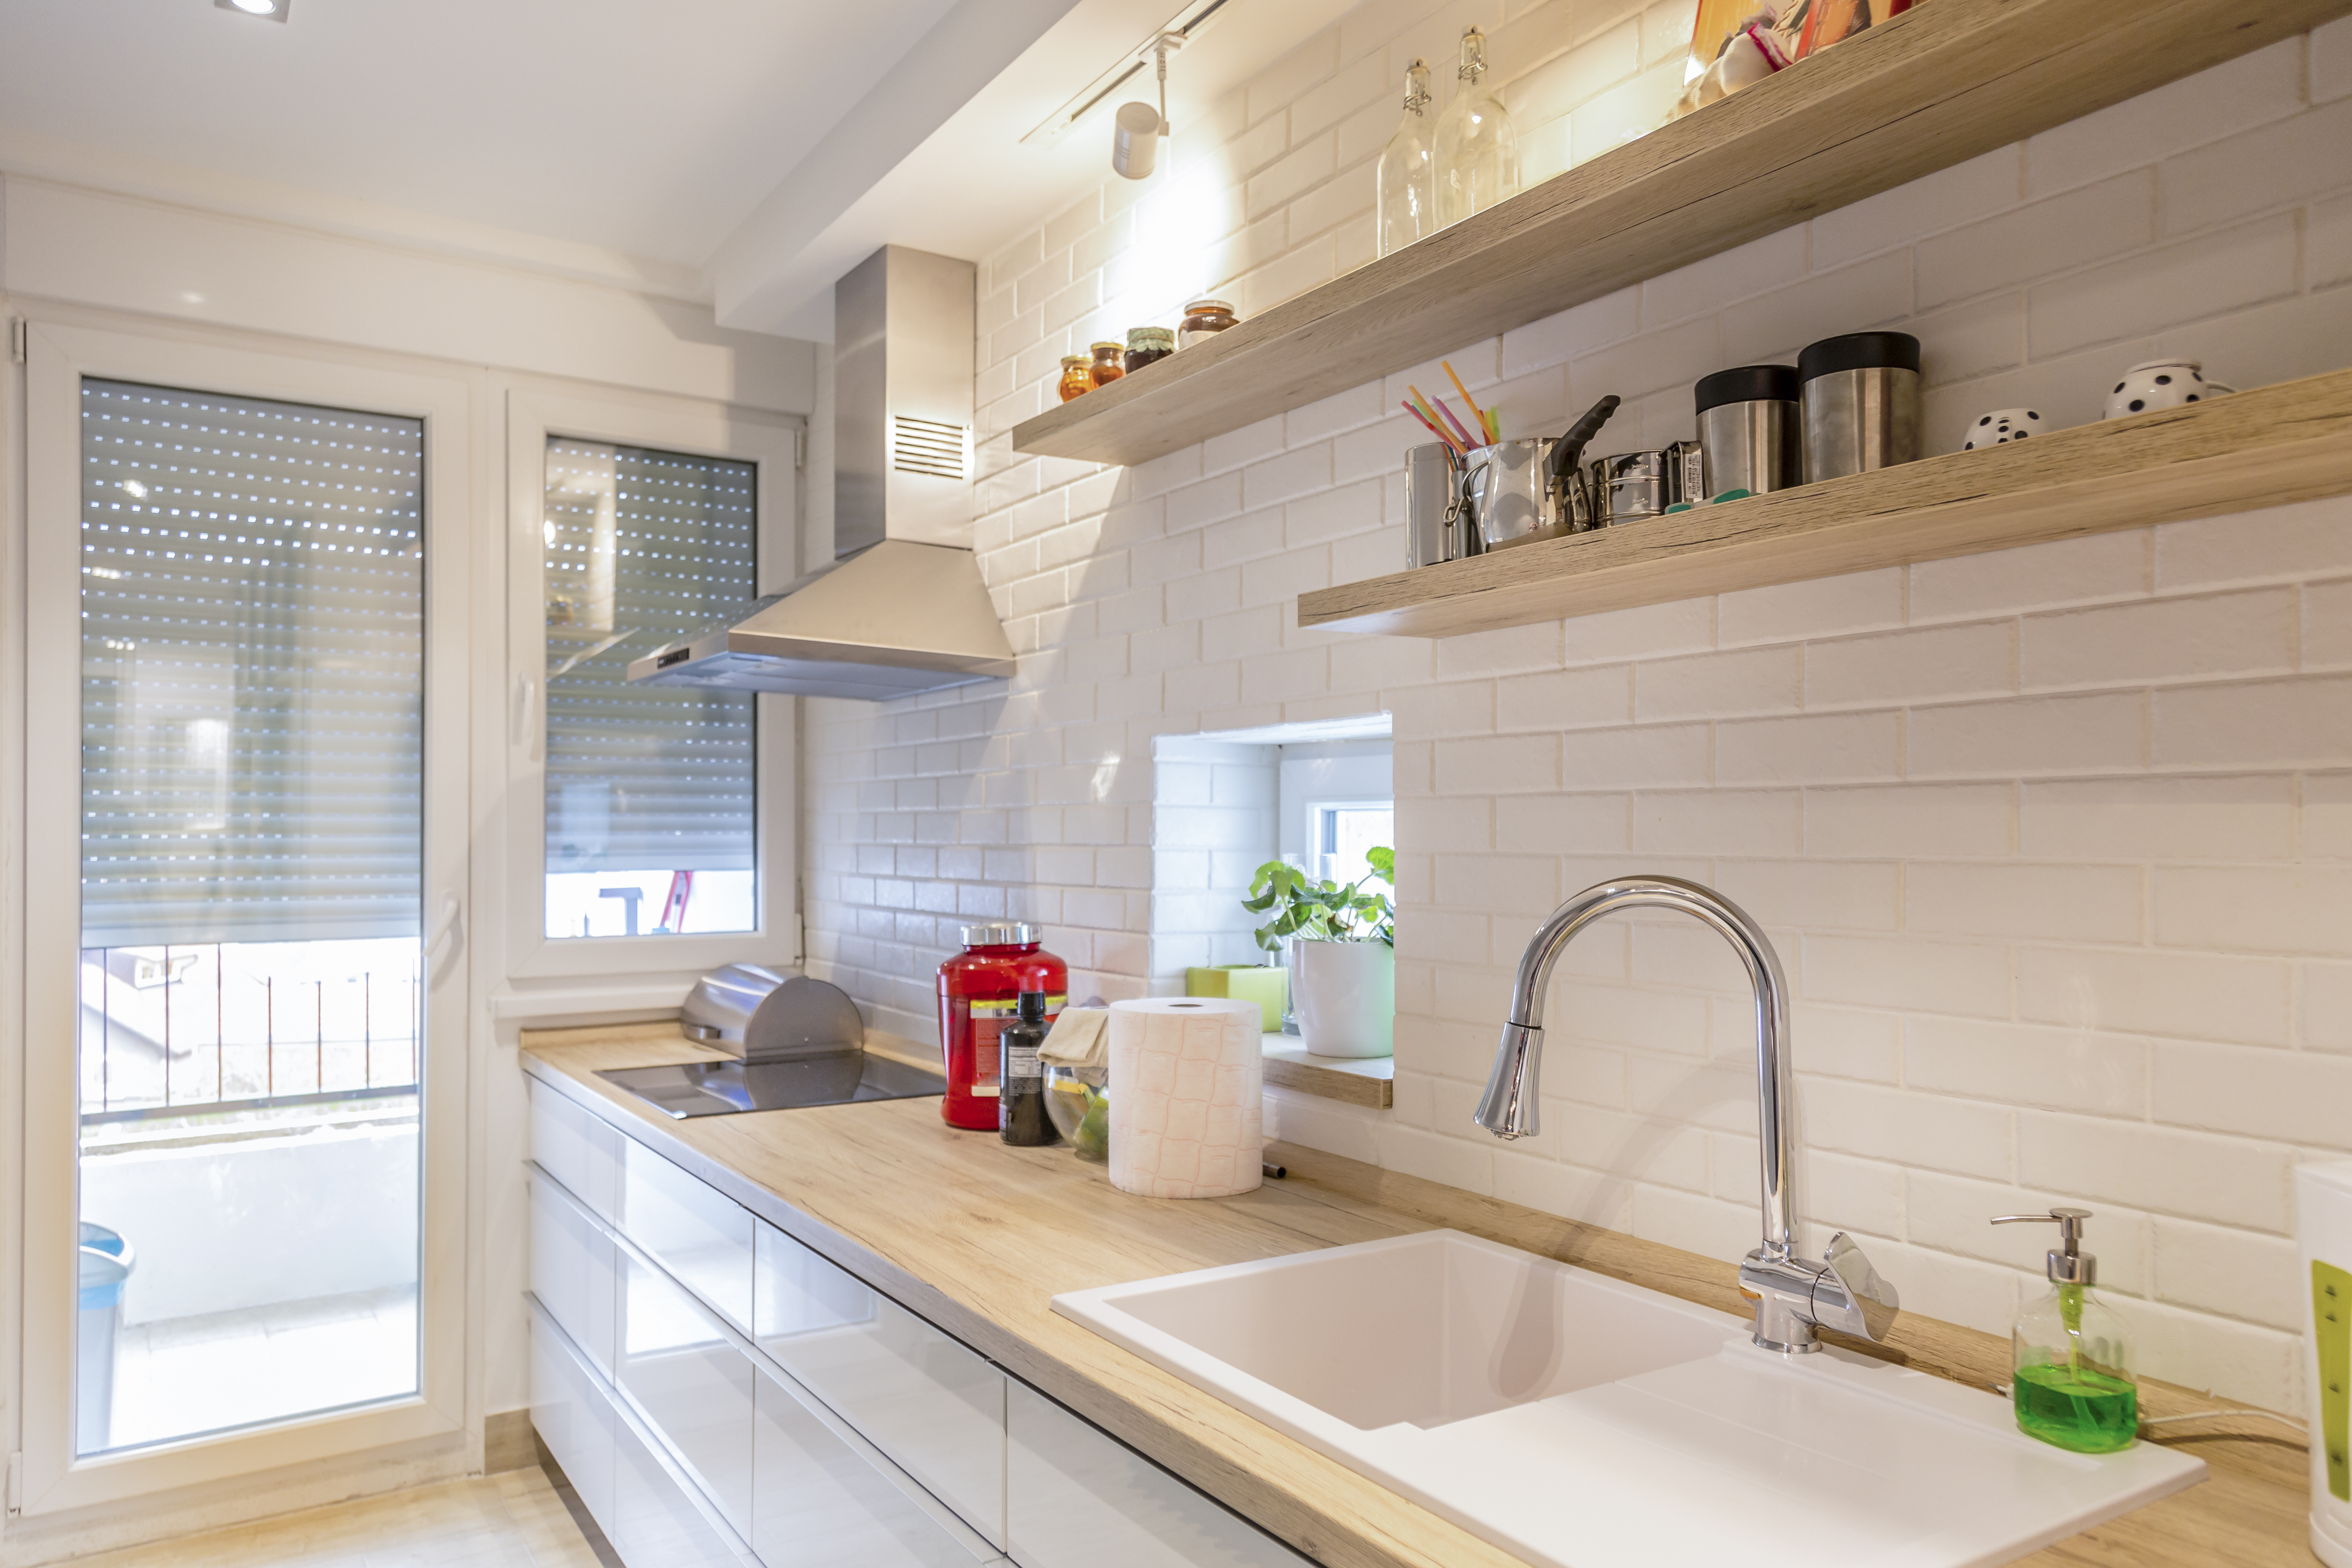 How To Replace An Undermount Sink In A Kitchen With Granite Counters